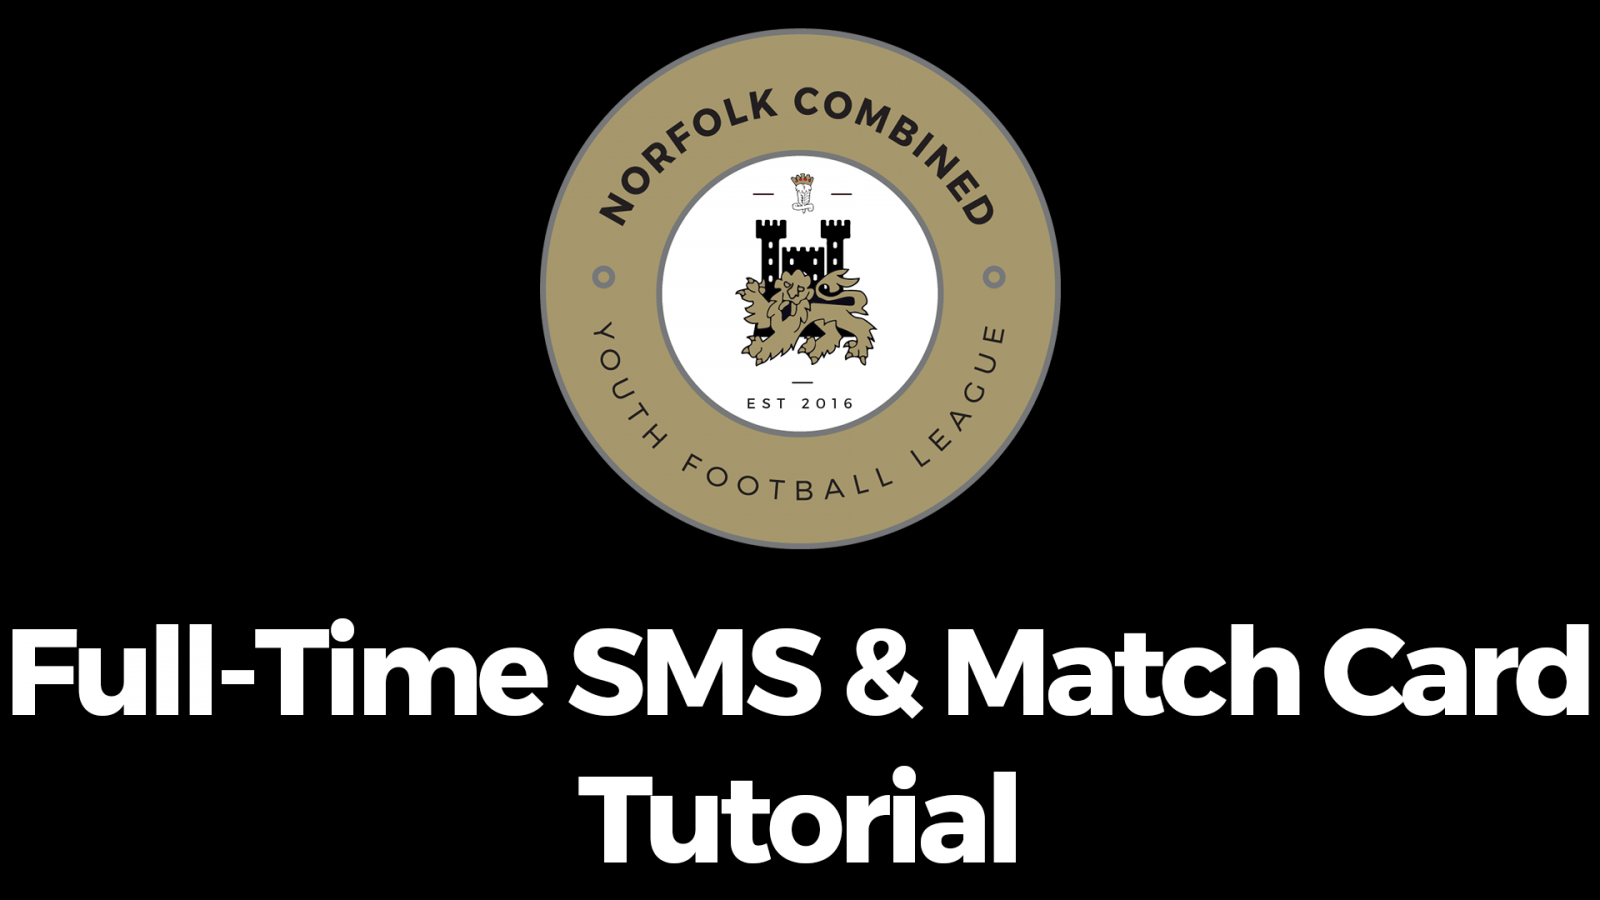 Full-Time SMS & Match Card Video